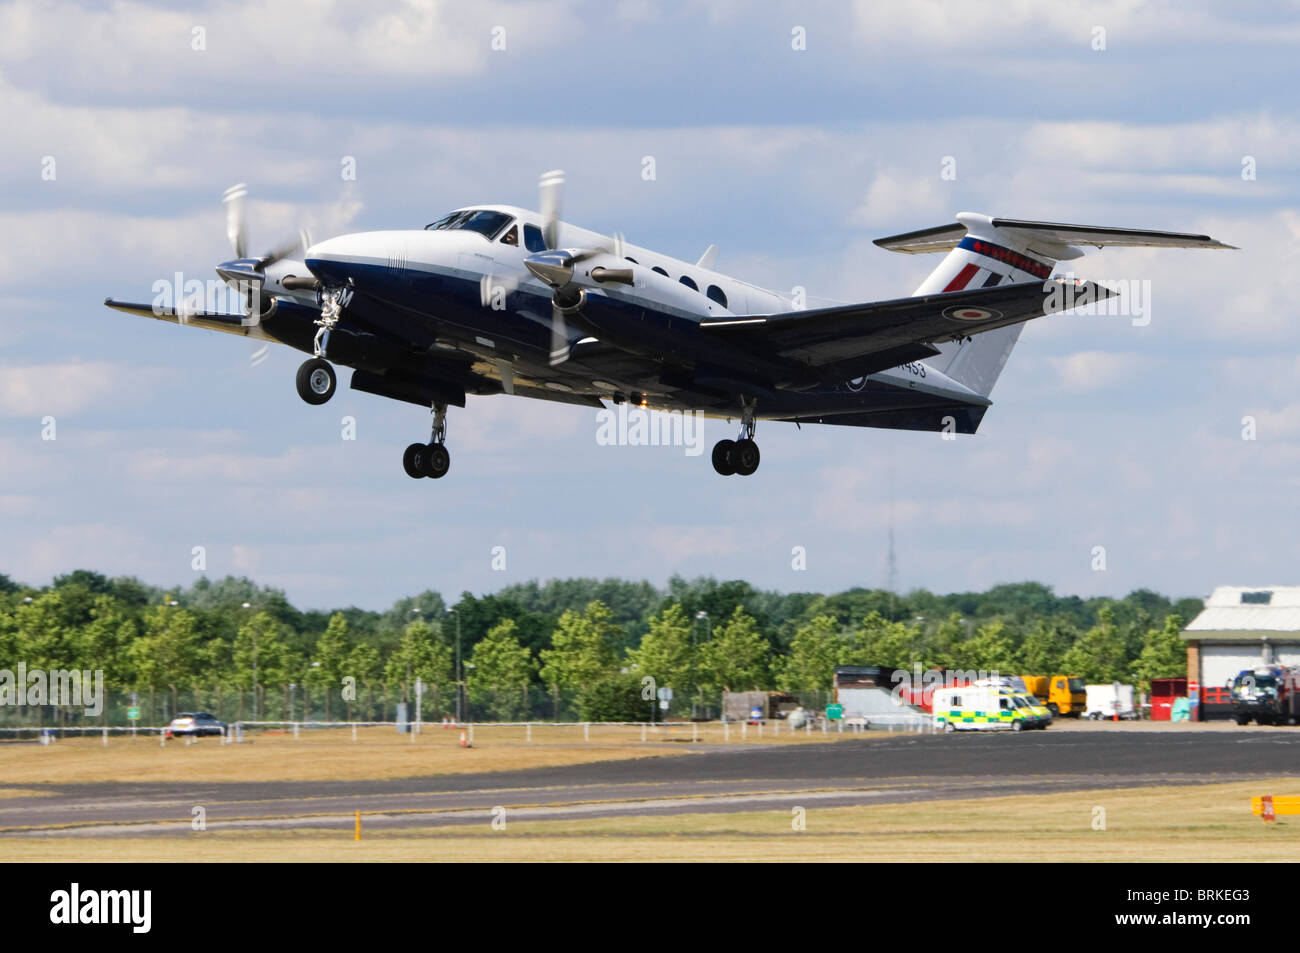 Beechcraft/Raytheon B200 King Air operated by the RAF taking off at Farnborough Airshow, UK. - Stock Image